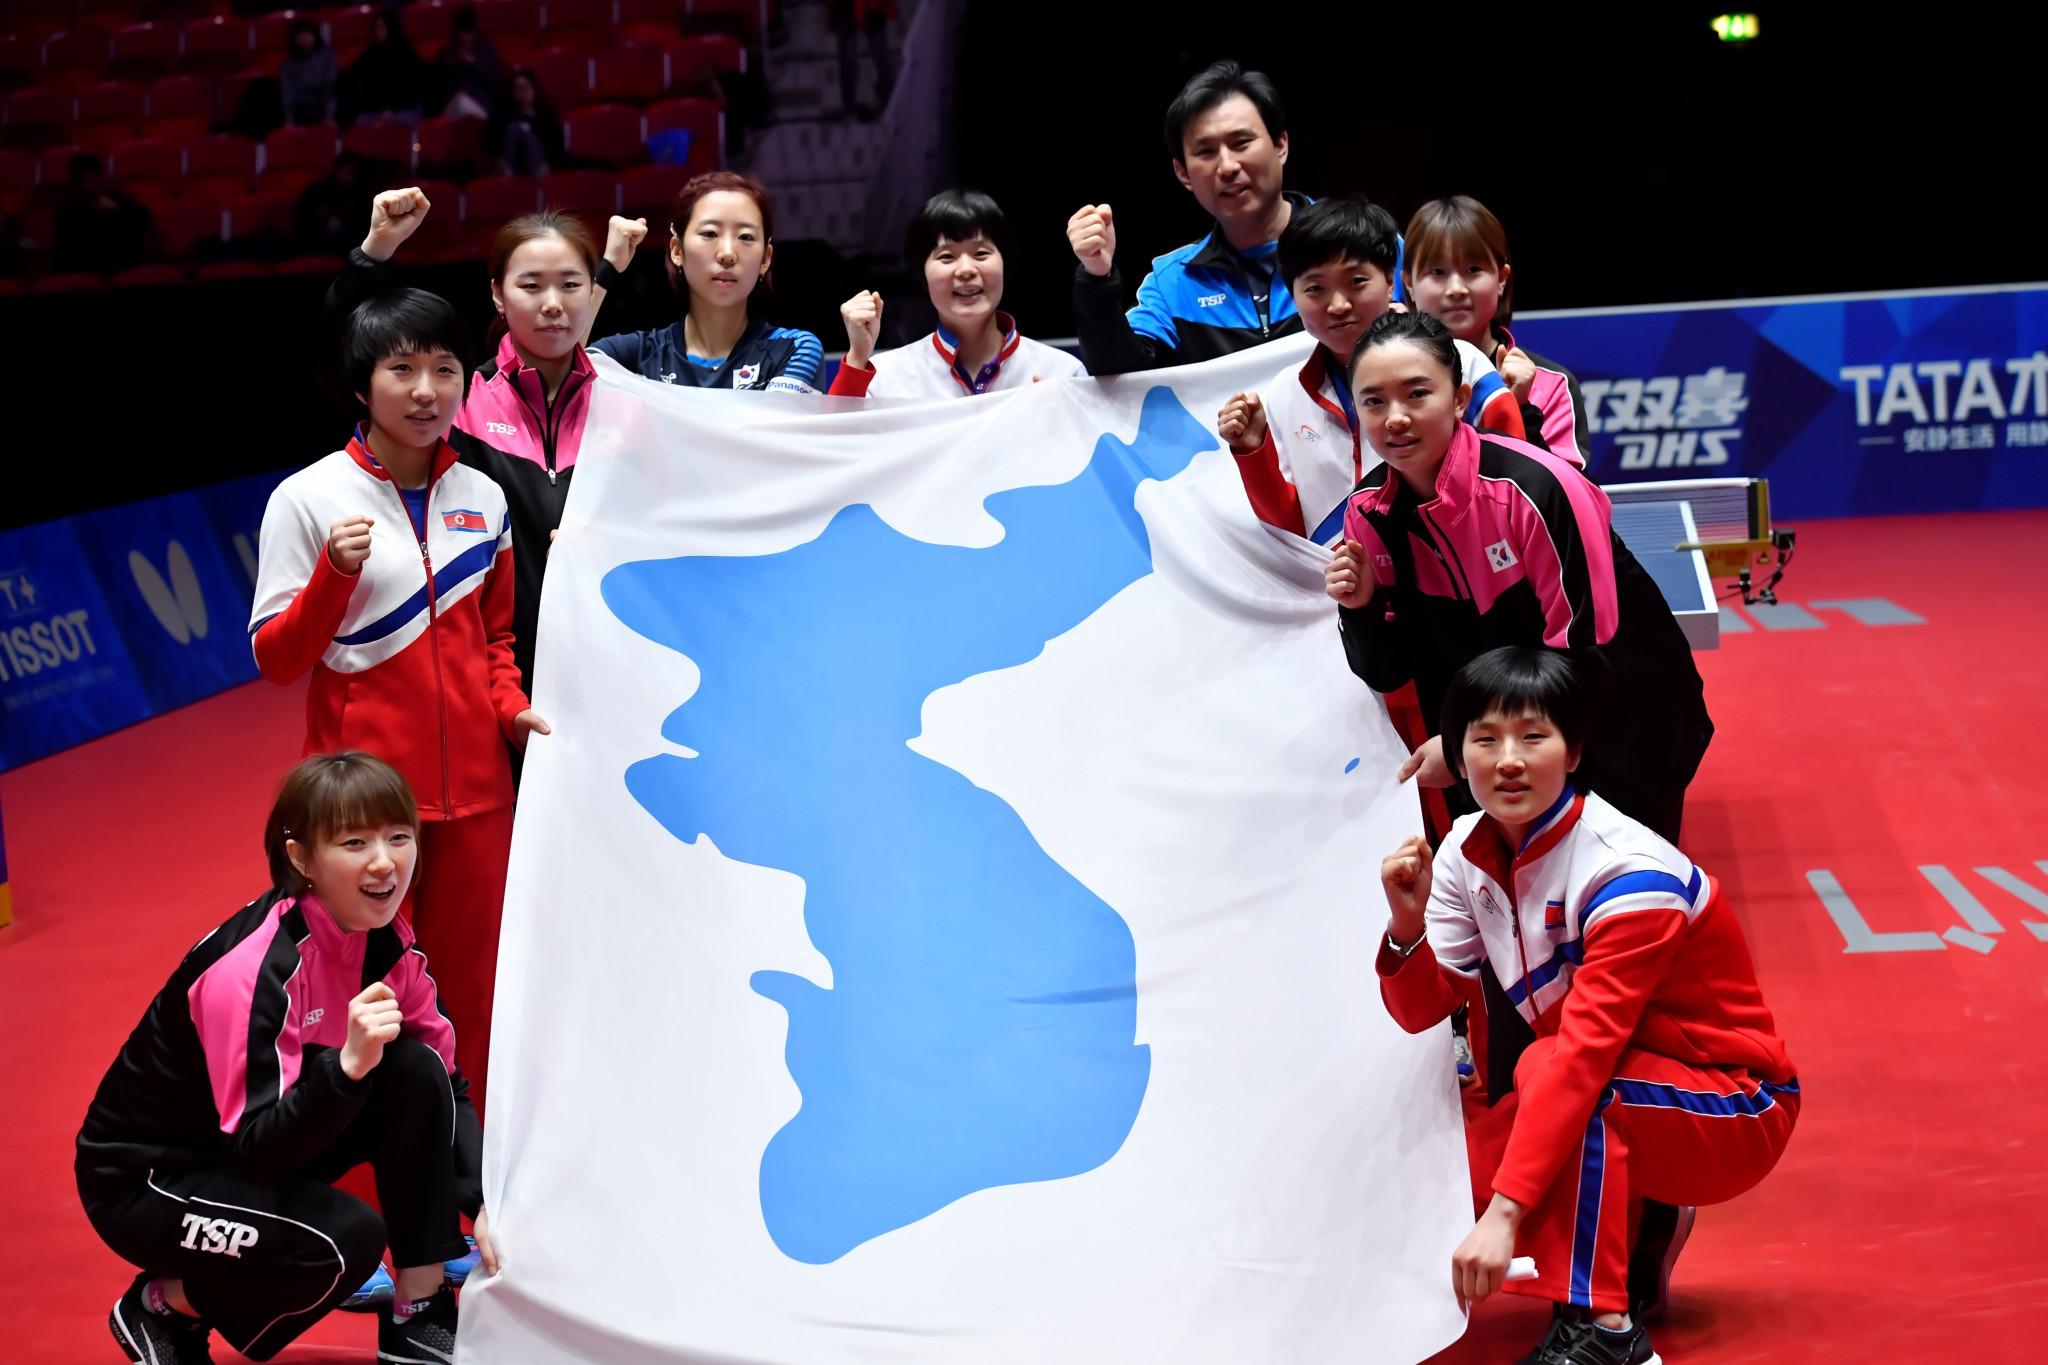 North and South Korean players participated together in an ad-hoc unified team in the semi-finals of the recent World Team Table Tennis Championships in Halmstad in Sweden ©Getty Images